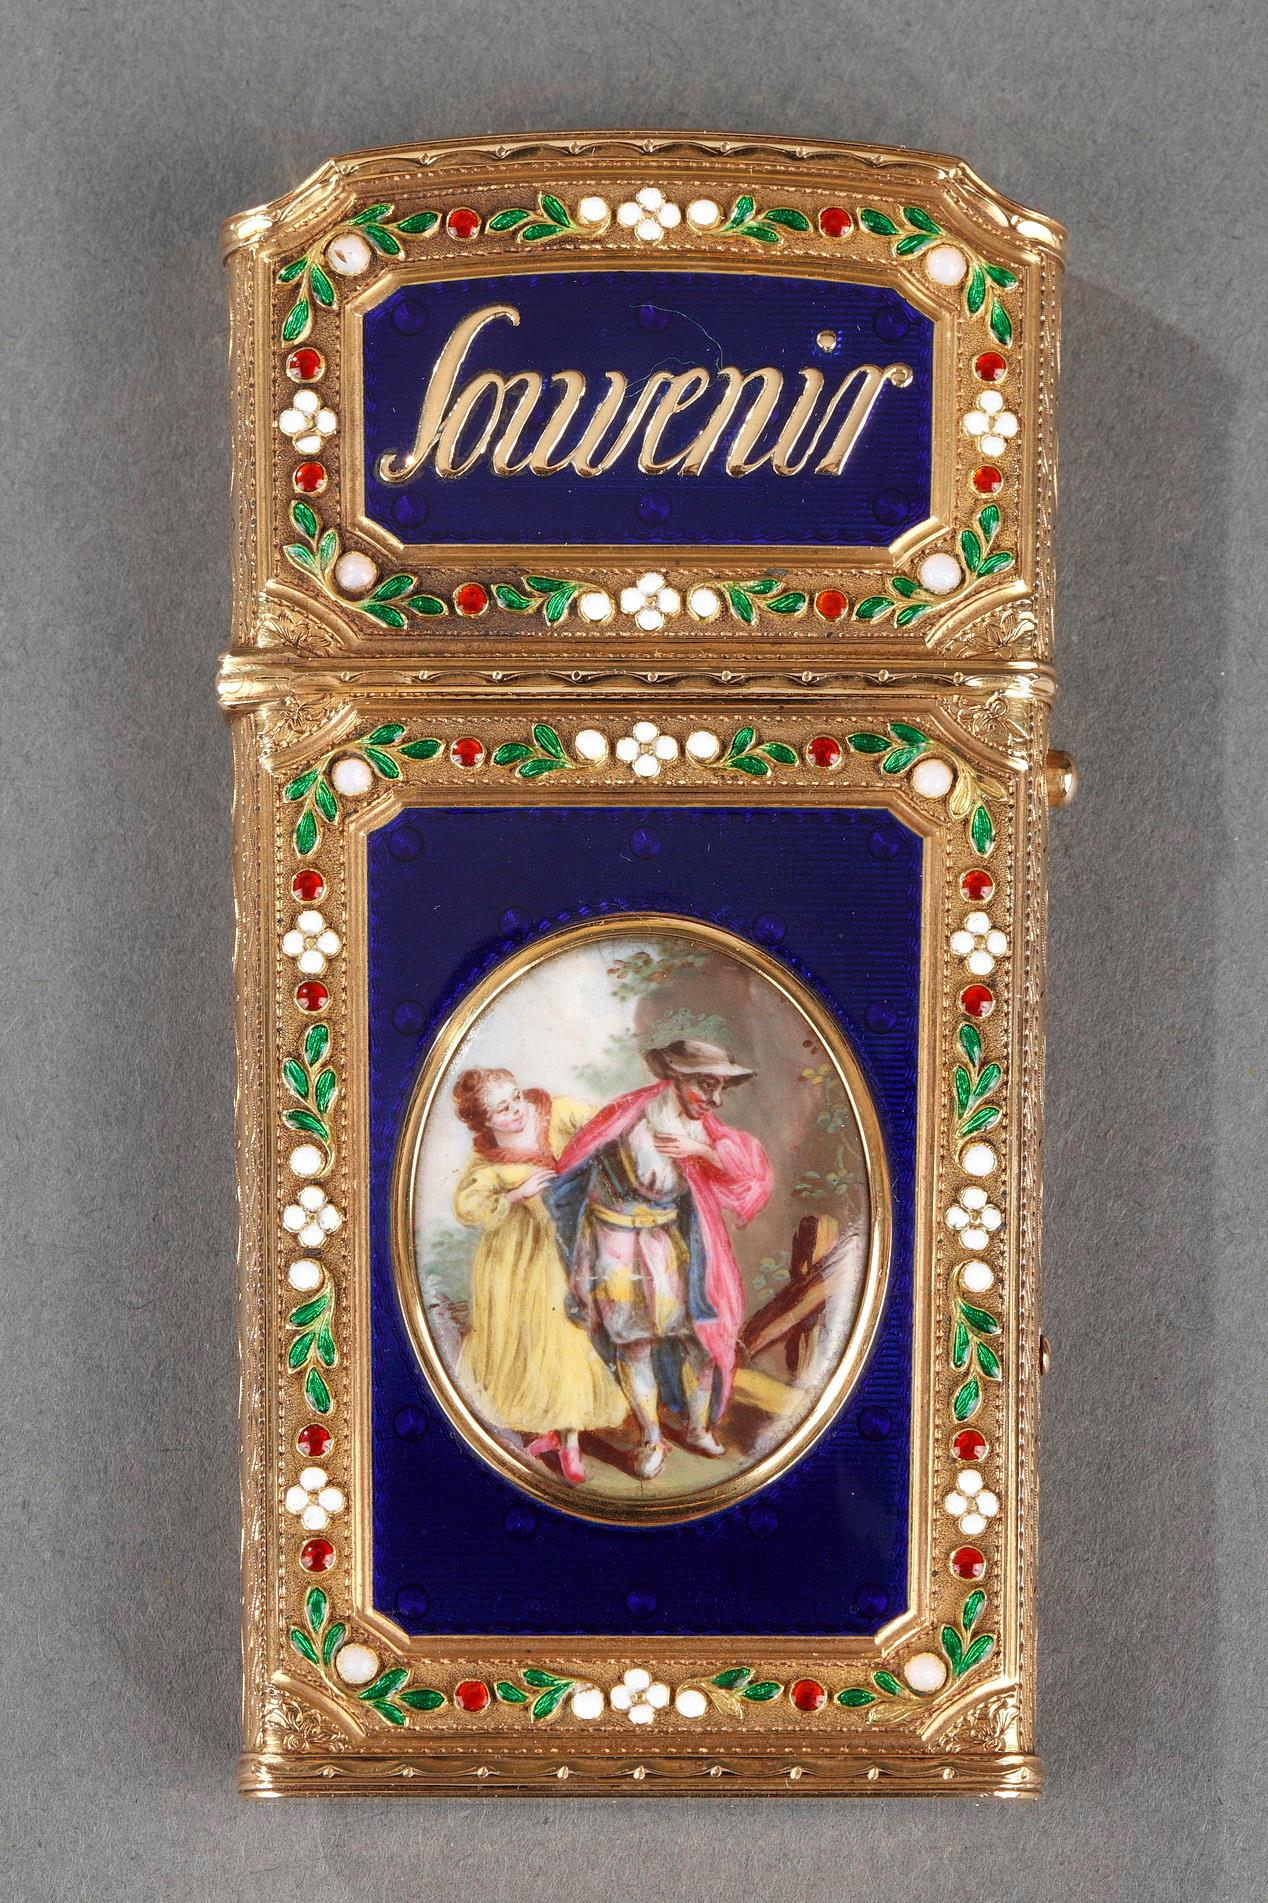 WRITING CASE IN ENAMELED GOLD.<br/> LATE 18TH CENTURY WORK.